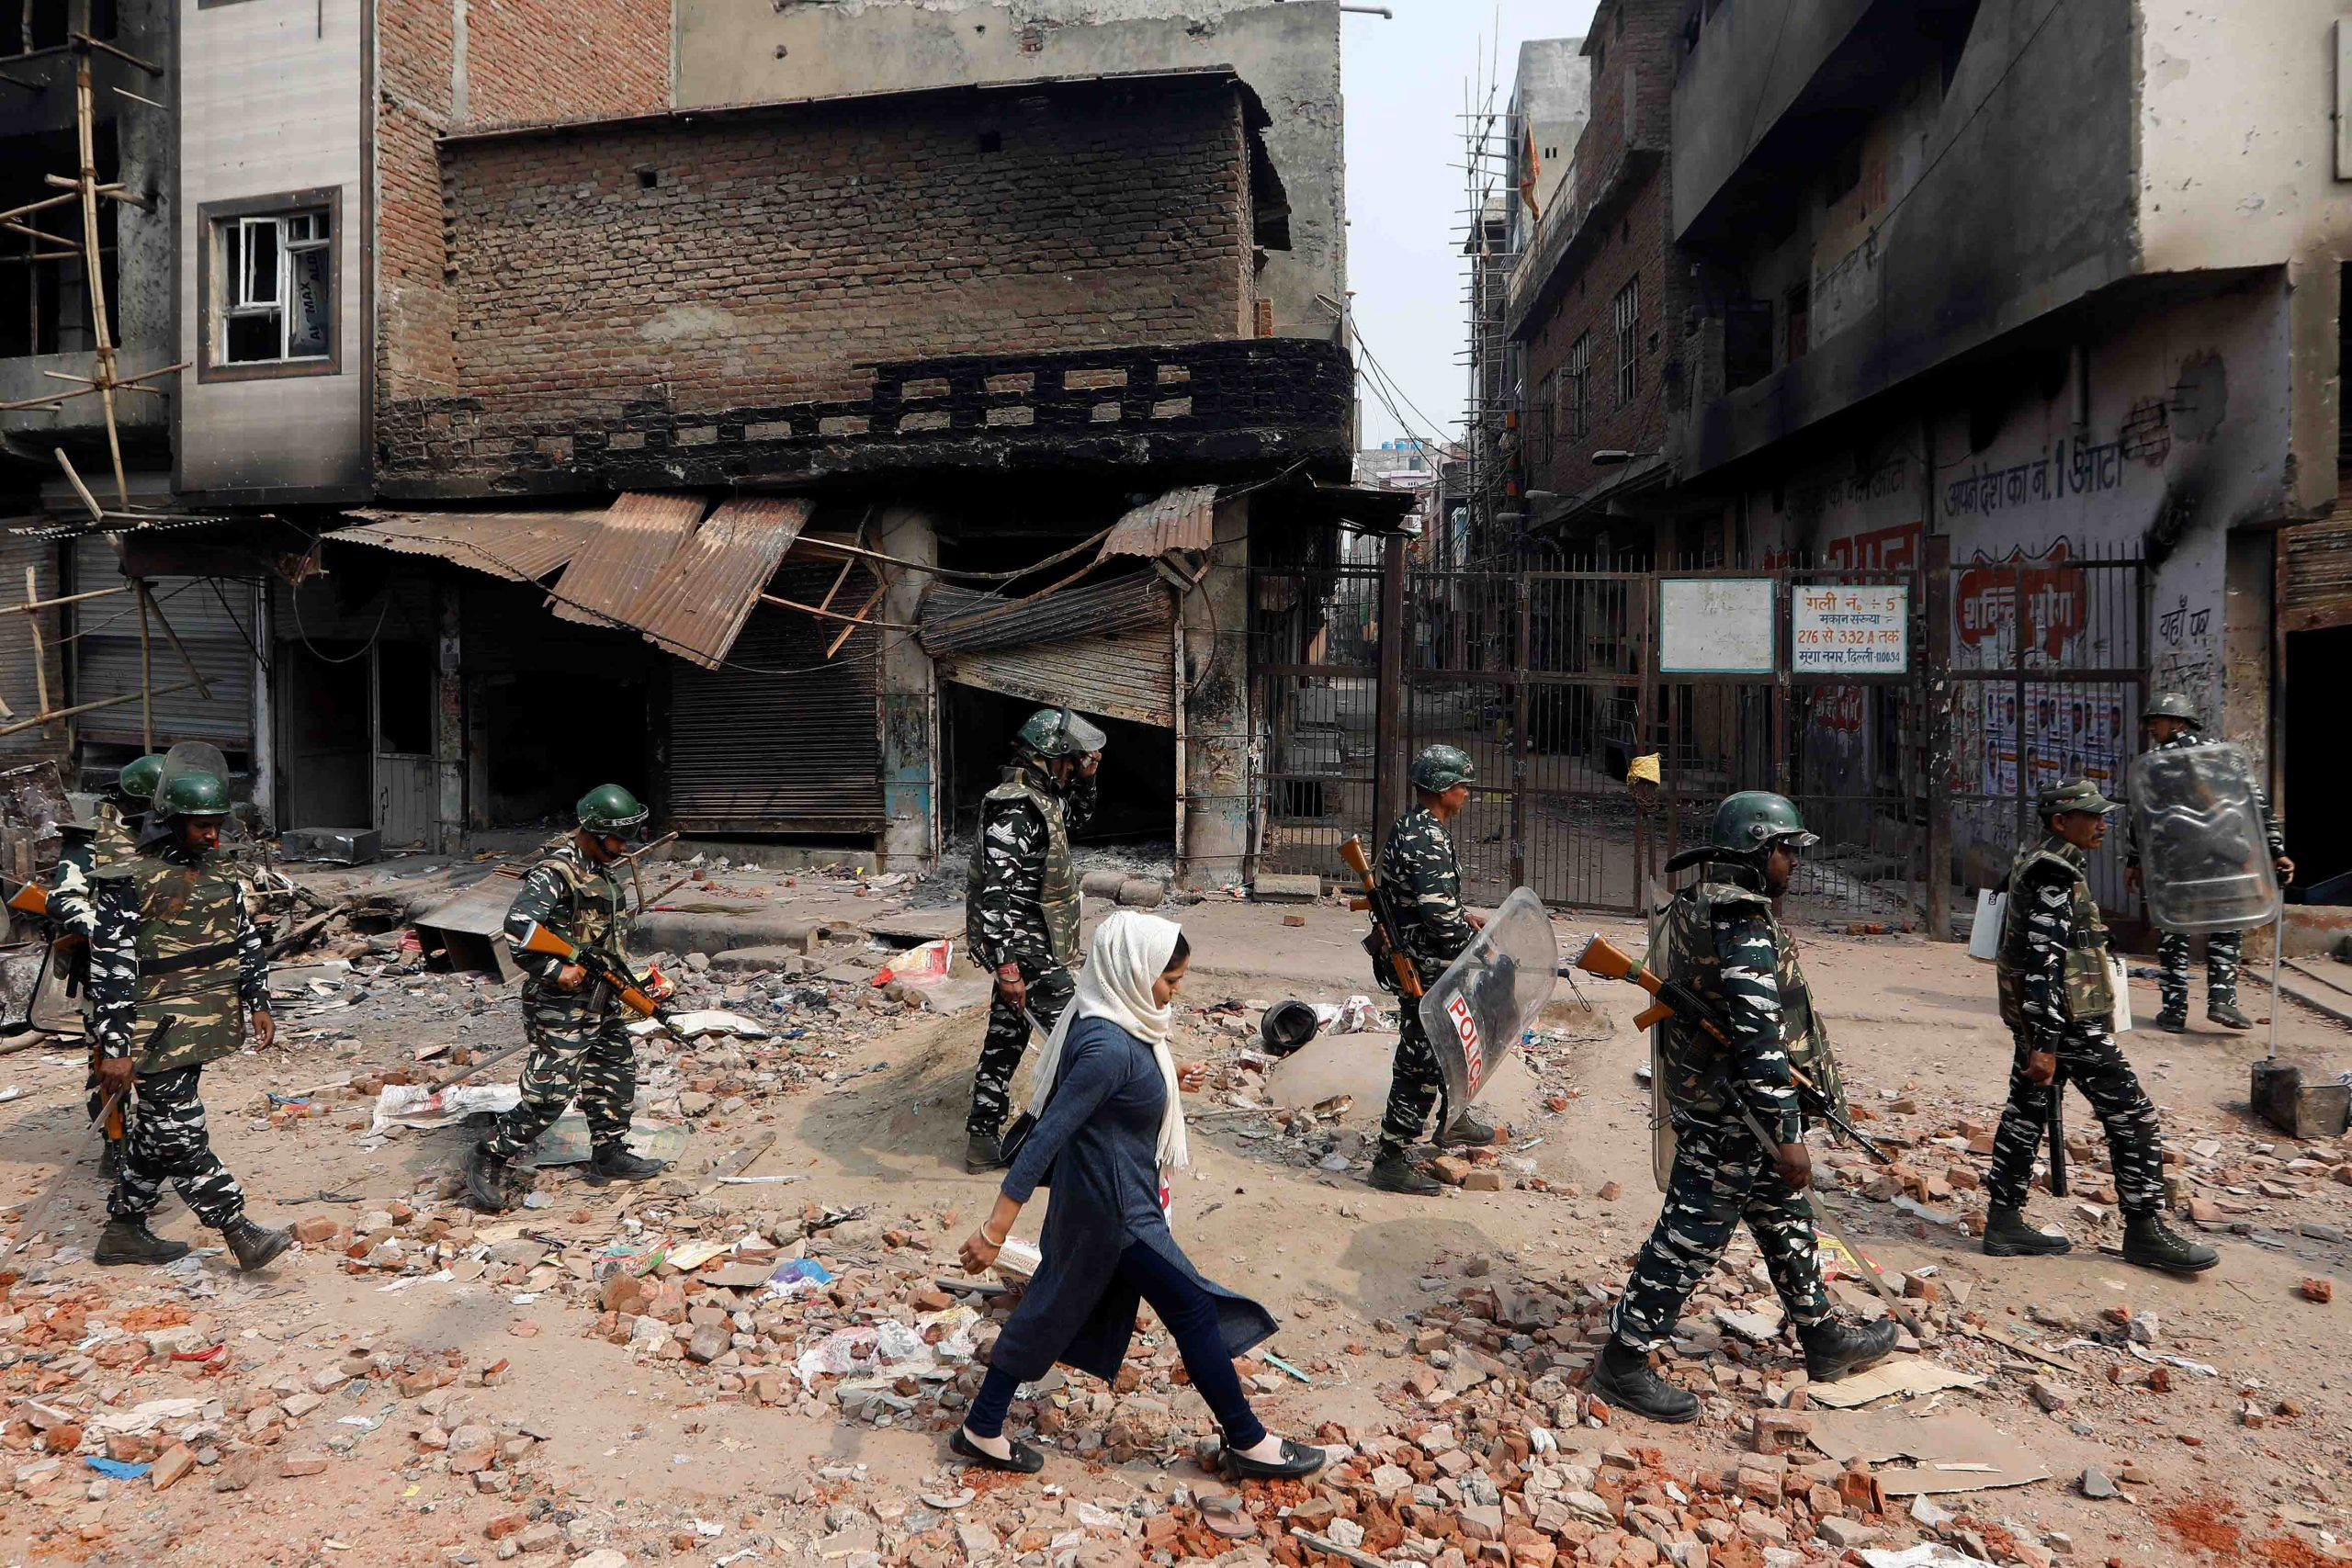 26 February 2020: A woman walks past security forces patrolling in a riot-affected area of New Delhi. Clashes broke out between those supporting and opposing the controversial new Citizenship Amendment Act as some fear it will be used to strip India's Muslim population of their citizenship. (Photograph by Reuters/Adnan Abidi)